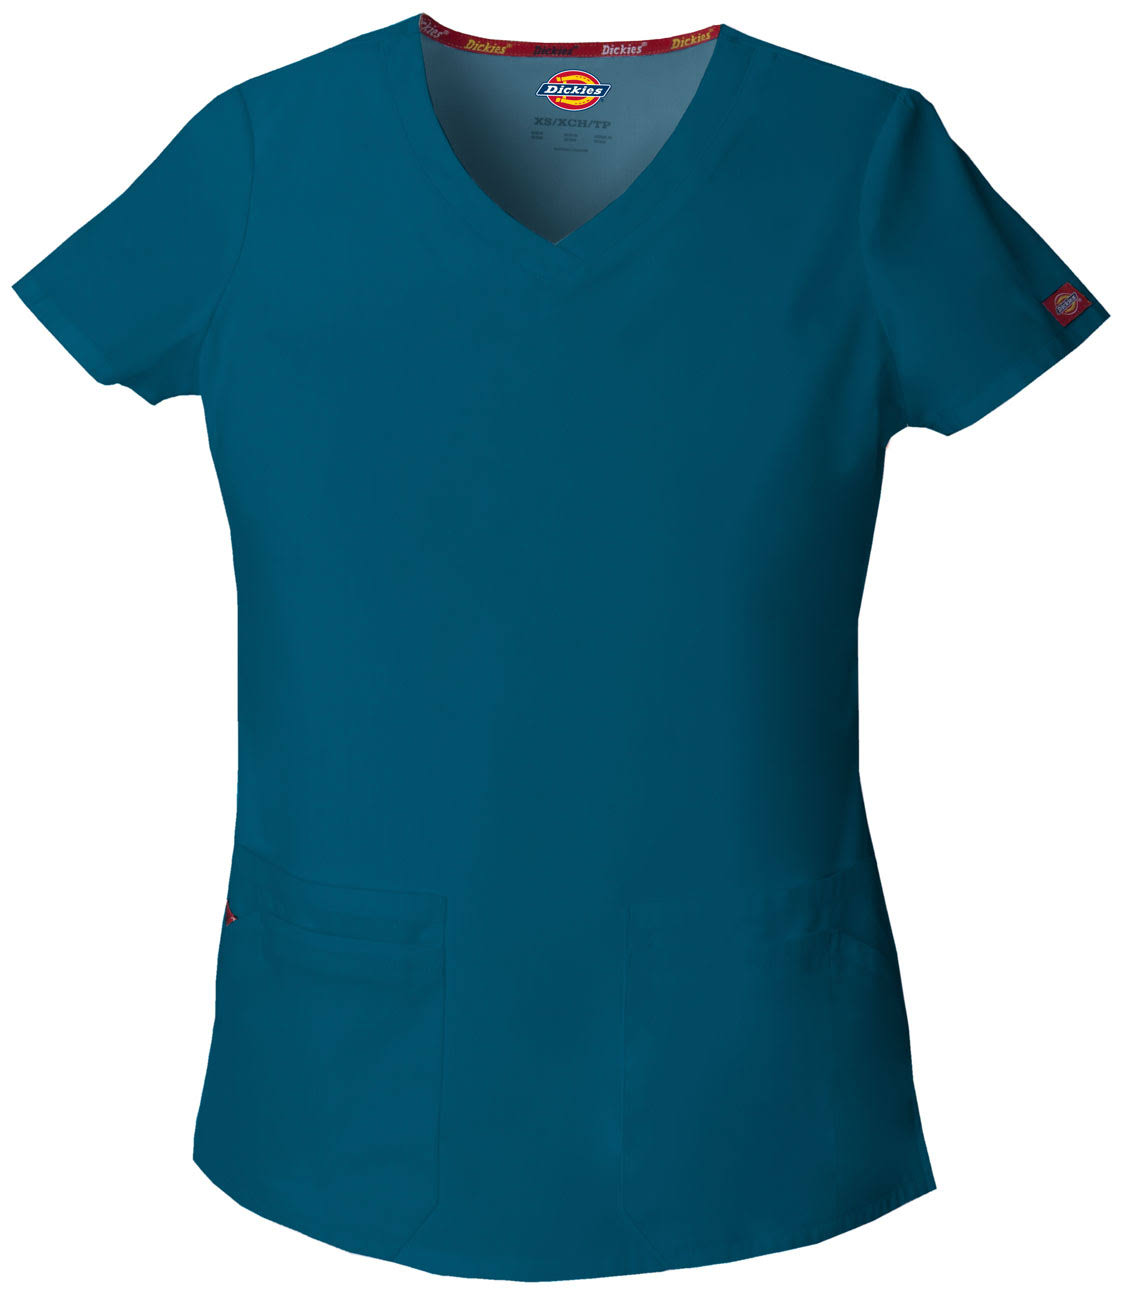 Dickies Women's Eds Signature V-Neck Top - Caribbean Blue, Medium